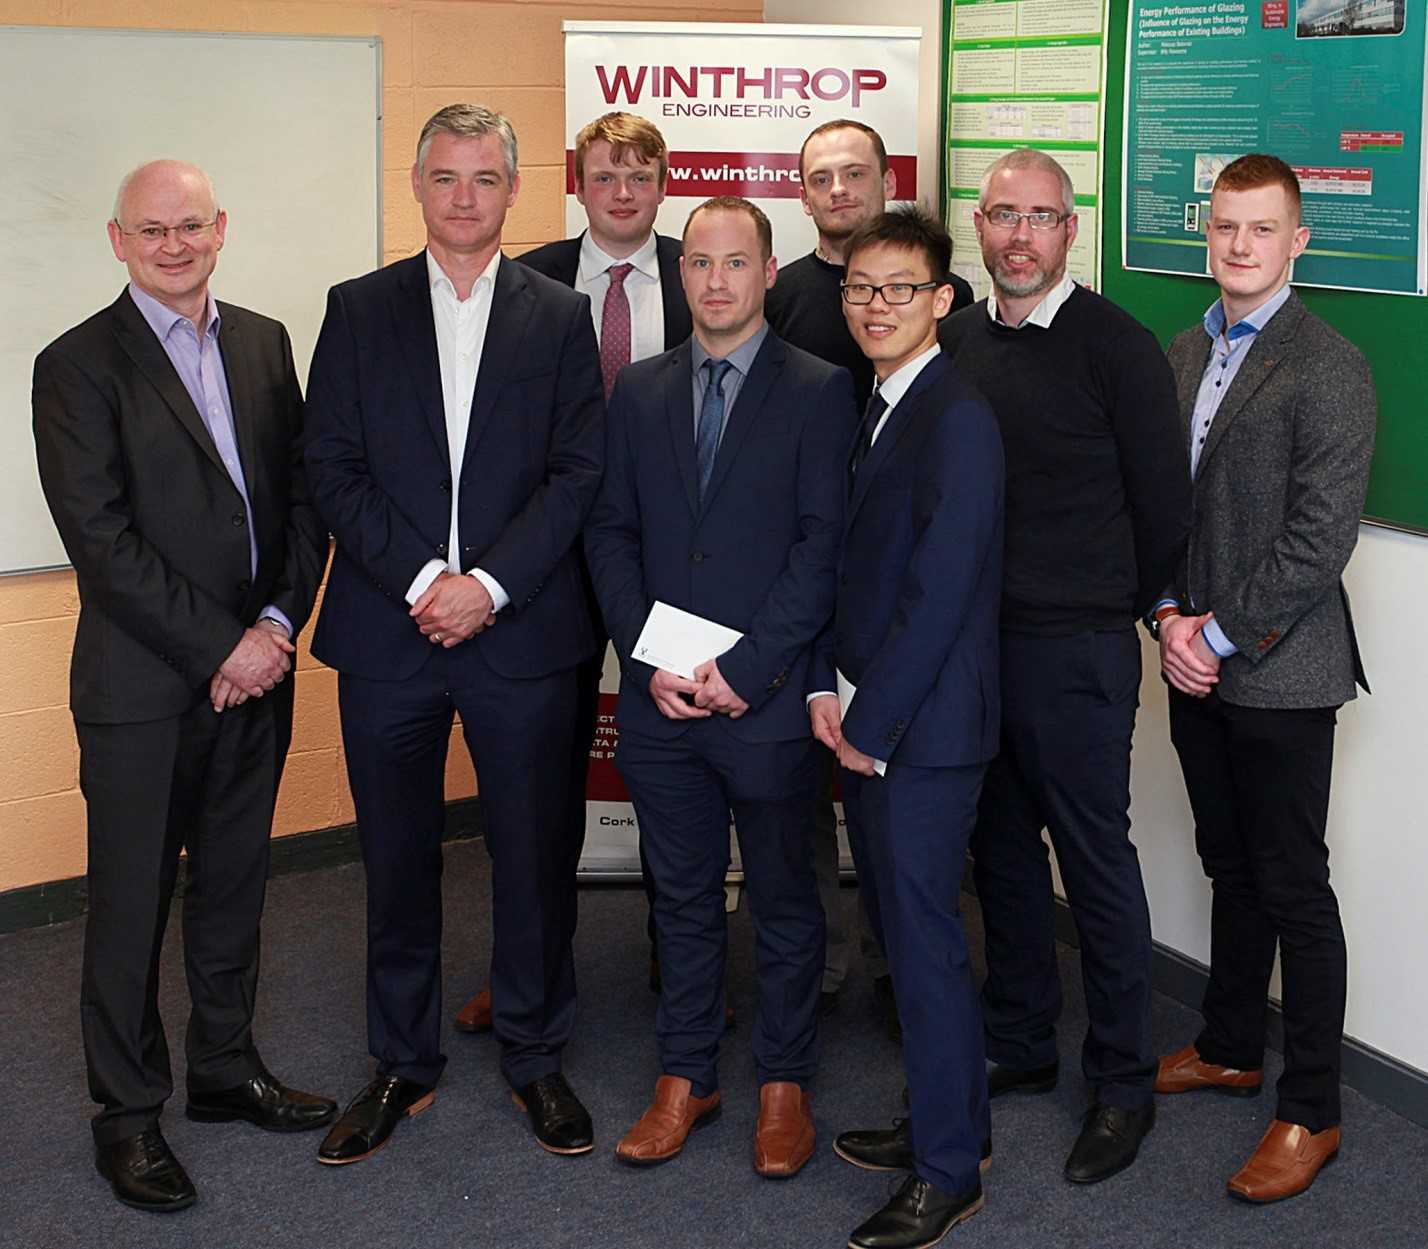 Winthrop and WIT representatives along with winner Danny Dowd, runner up Wei Xing Lee and other final year Sustainable Energy Engineering students